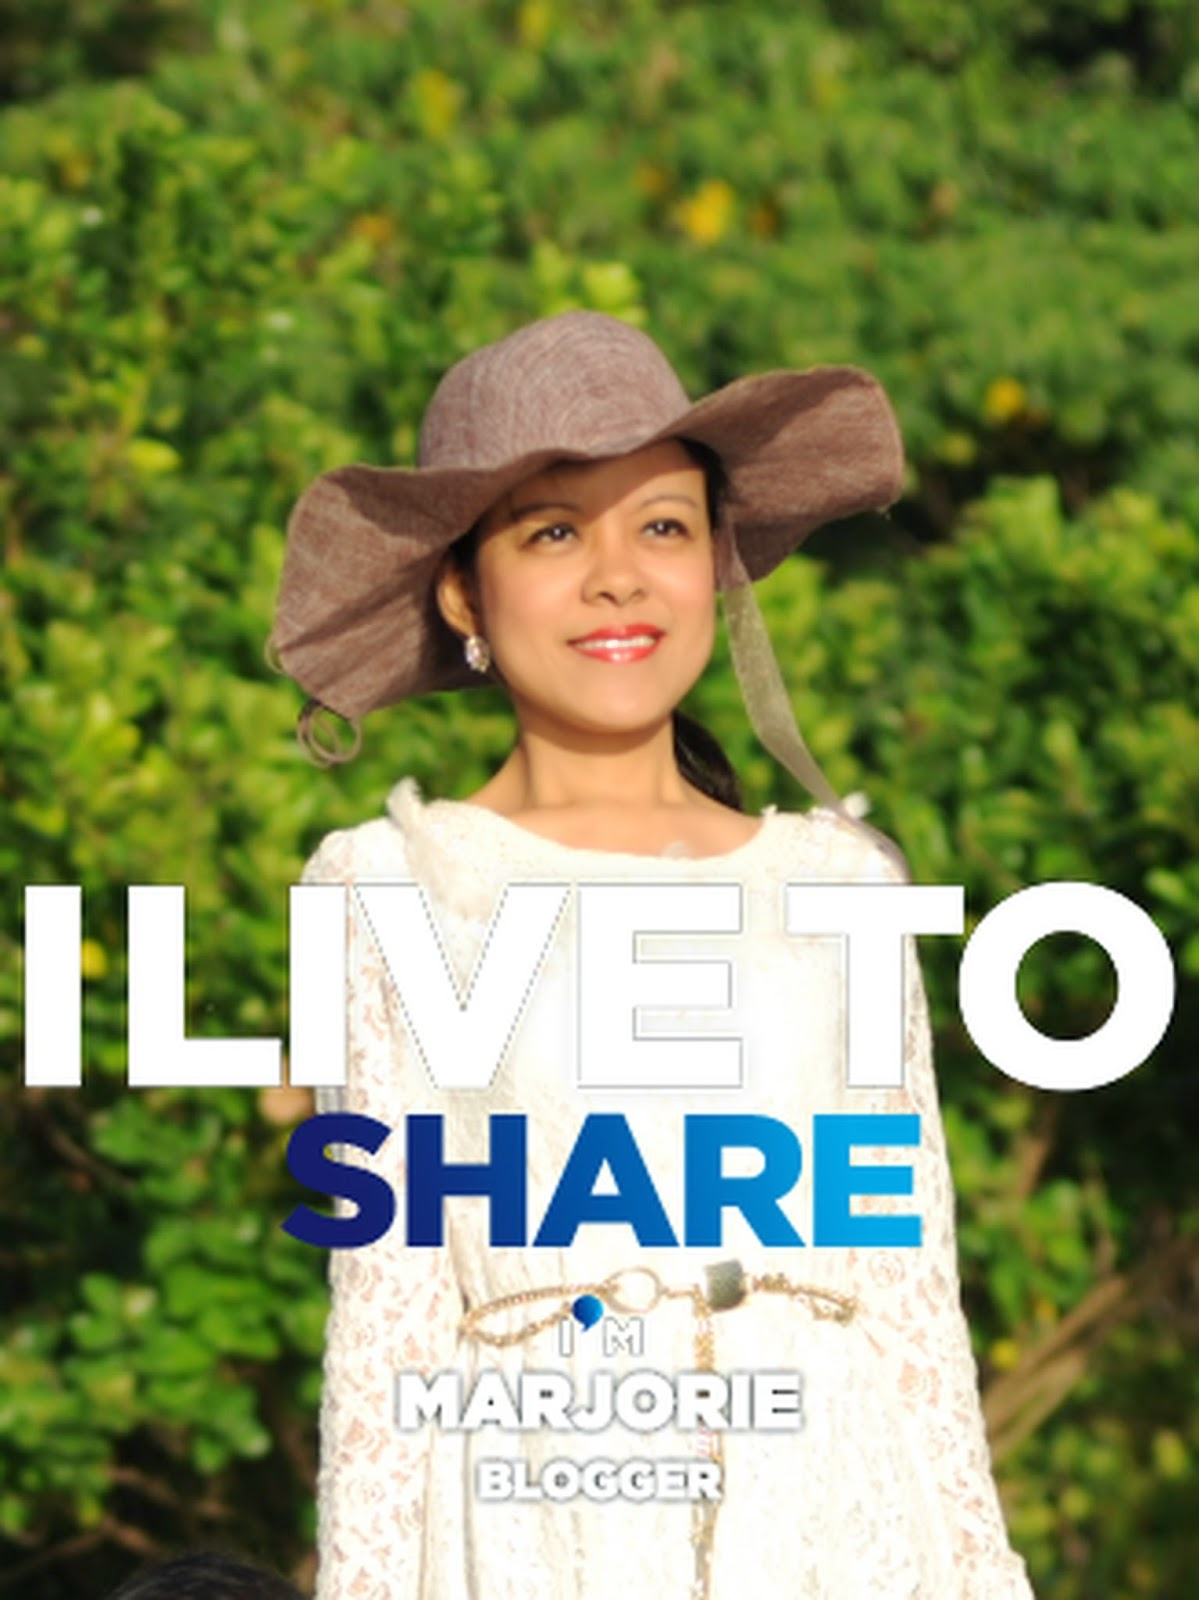 I-Live-To-Share via Woman-In-Digital